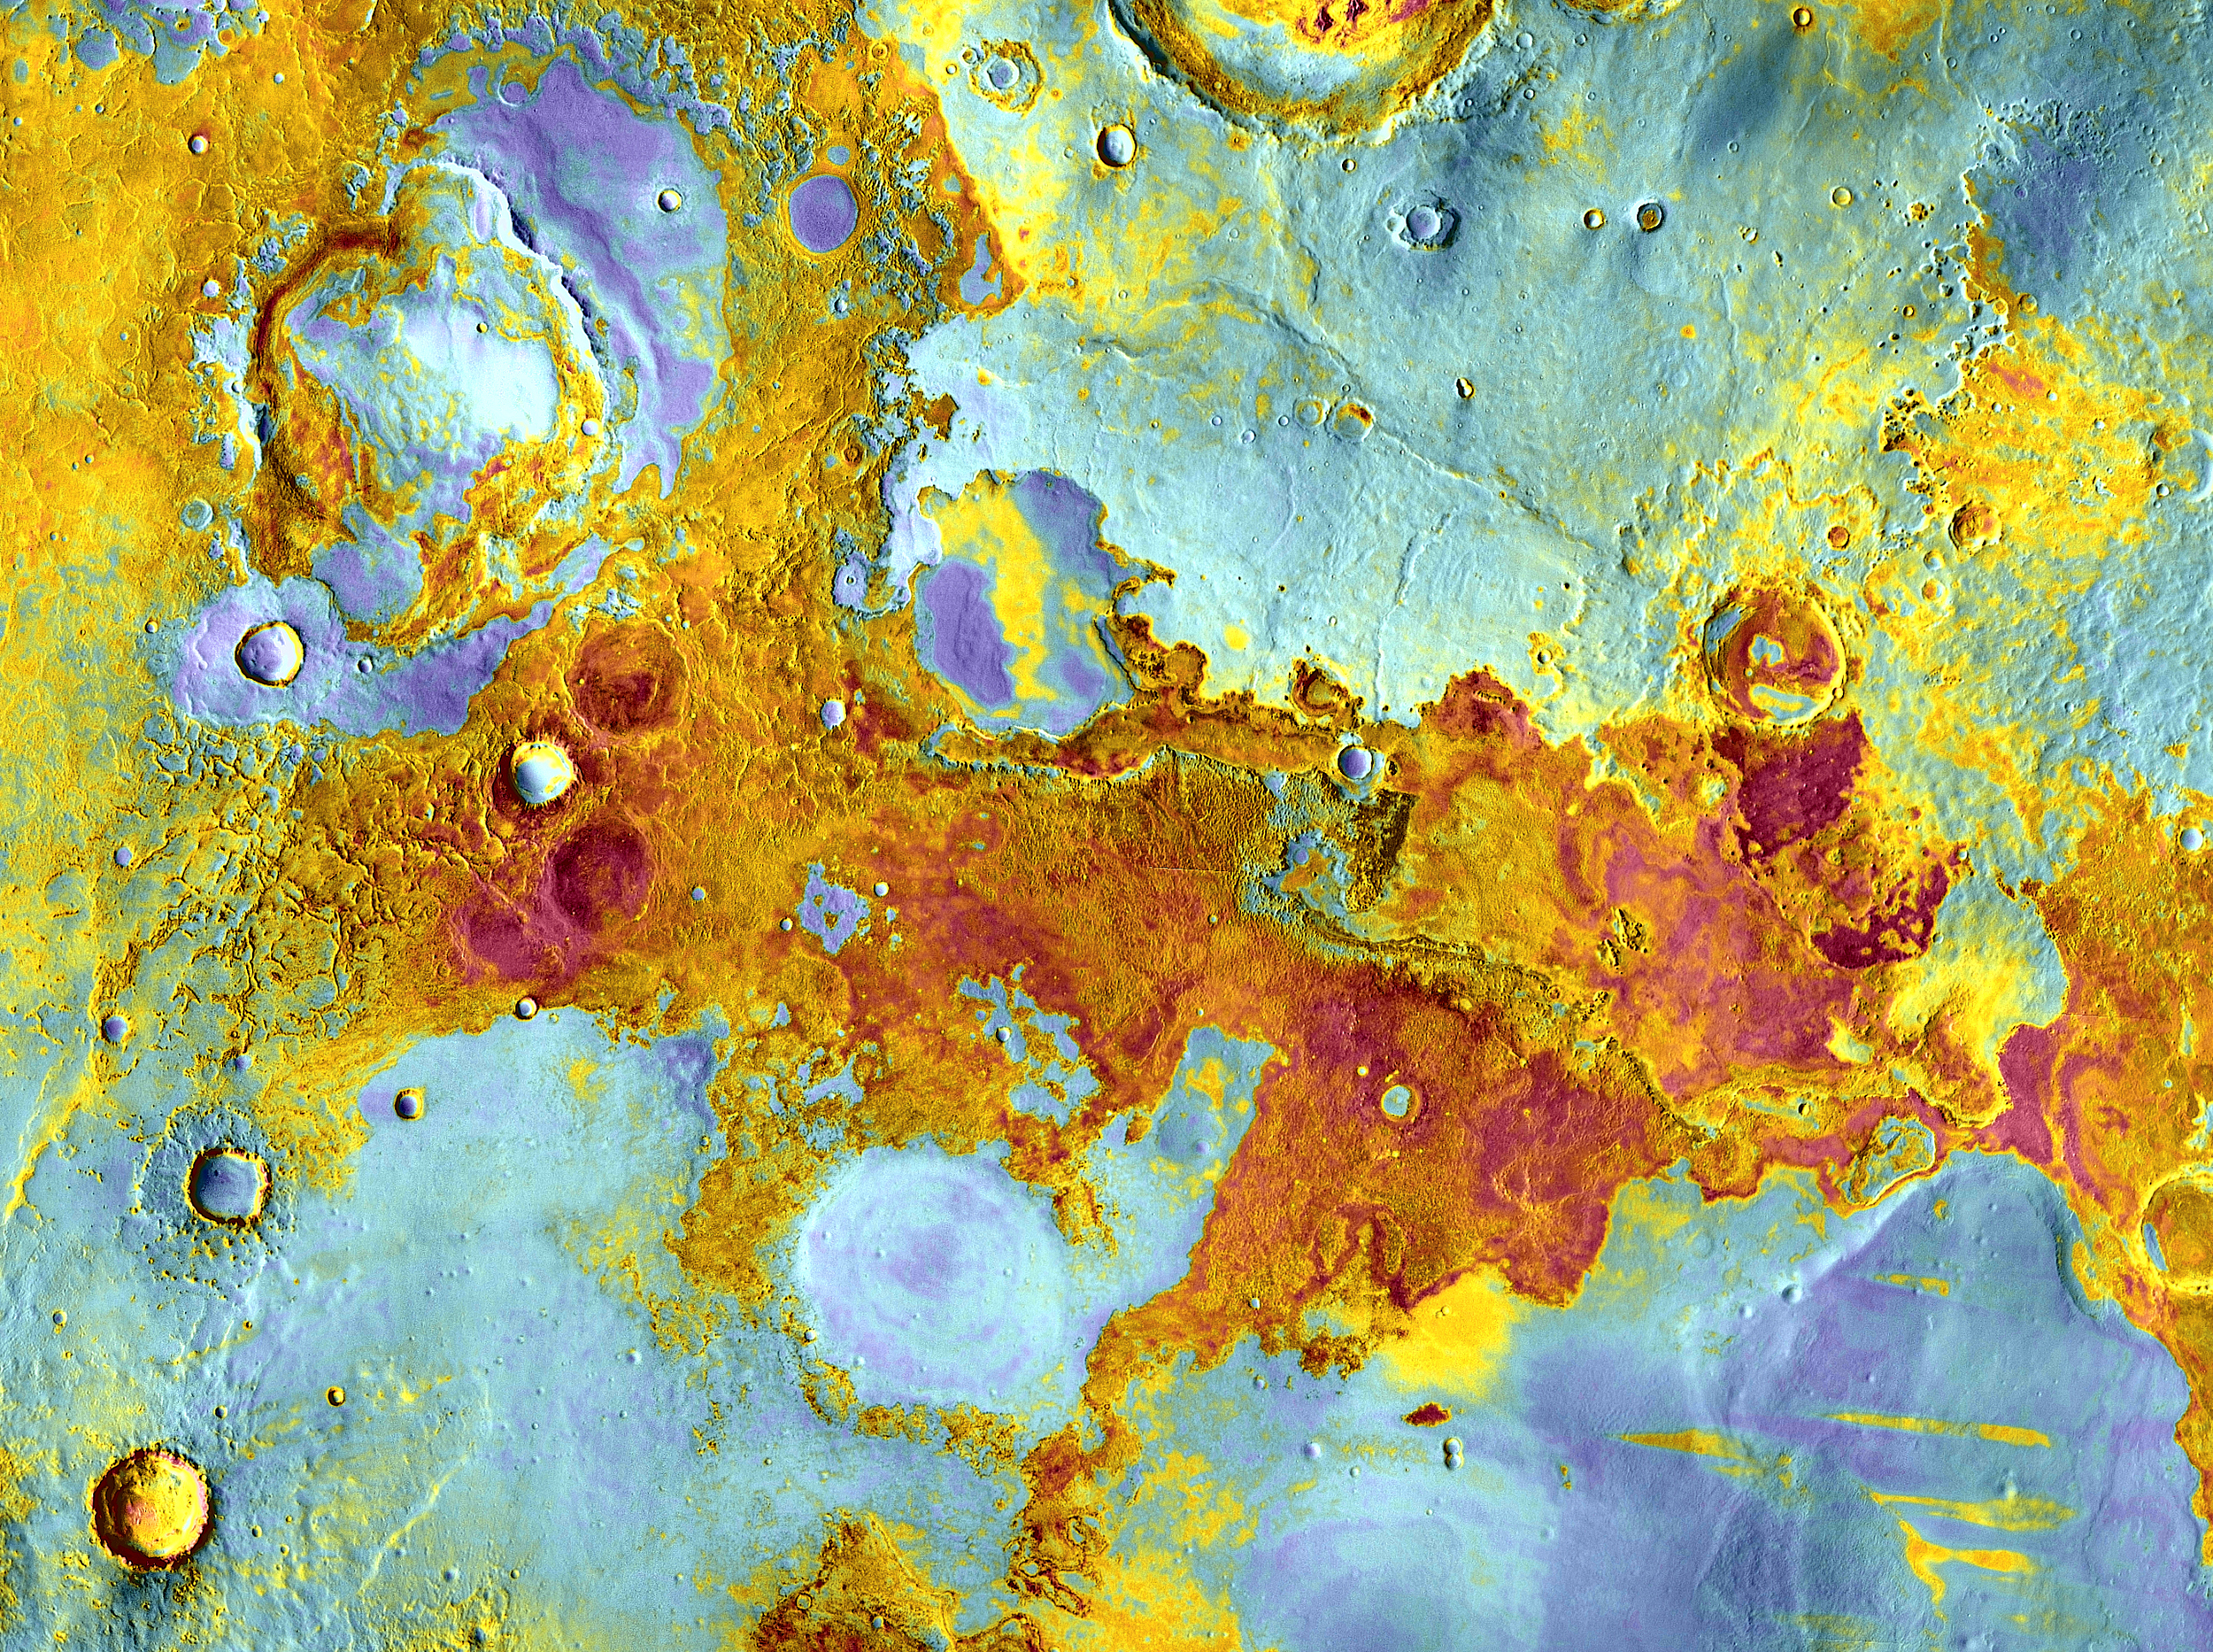 Meridiani Planum:  This image shows a false-color view of part of Meridiani Planum, about 250 miles northeast of where Opportunity landed. The image was taken by the Thermal Emission Imaging System on NASA's Mars Odyssey orbiter and released April 1, 2012.